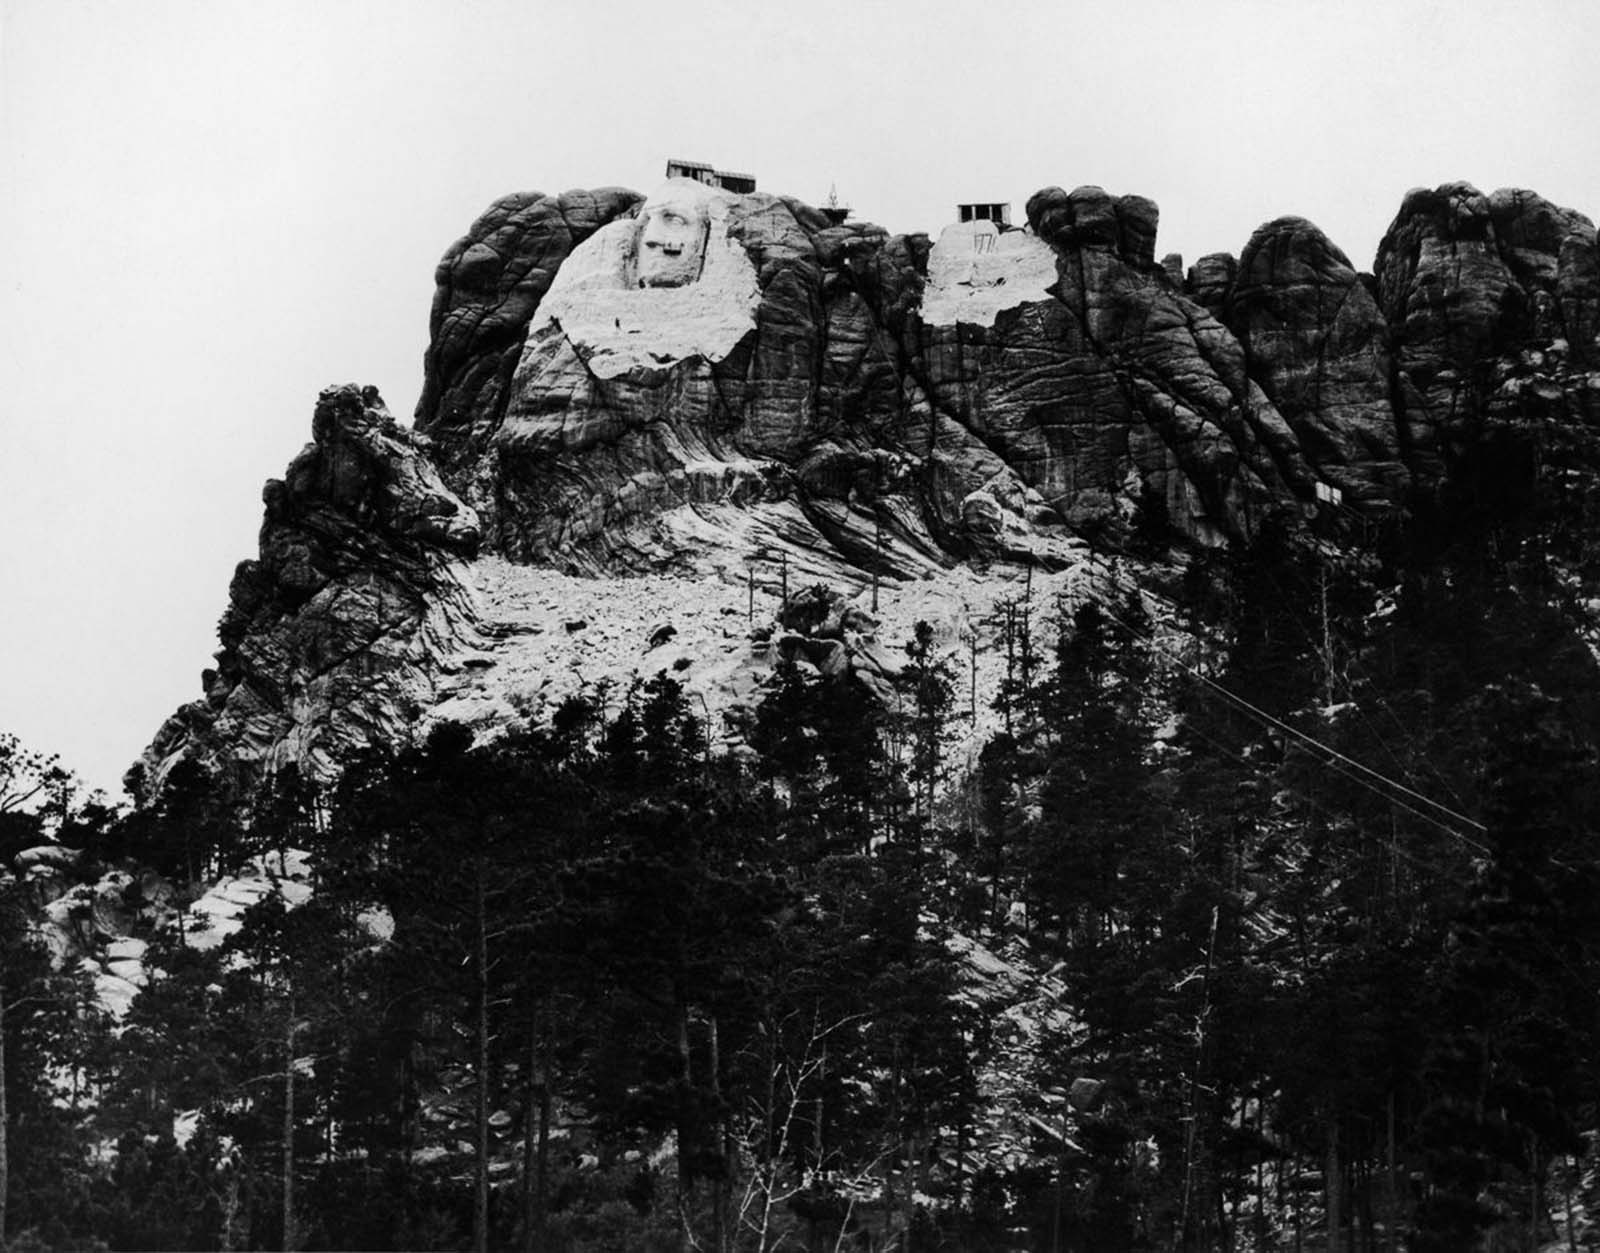 As Six Grandfathers, the mountain was part of the route that Lakota leader Black Elk took in a spiritual journey that culminated at Black Elk Peak.